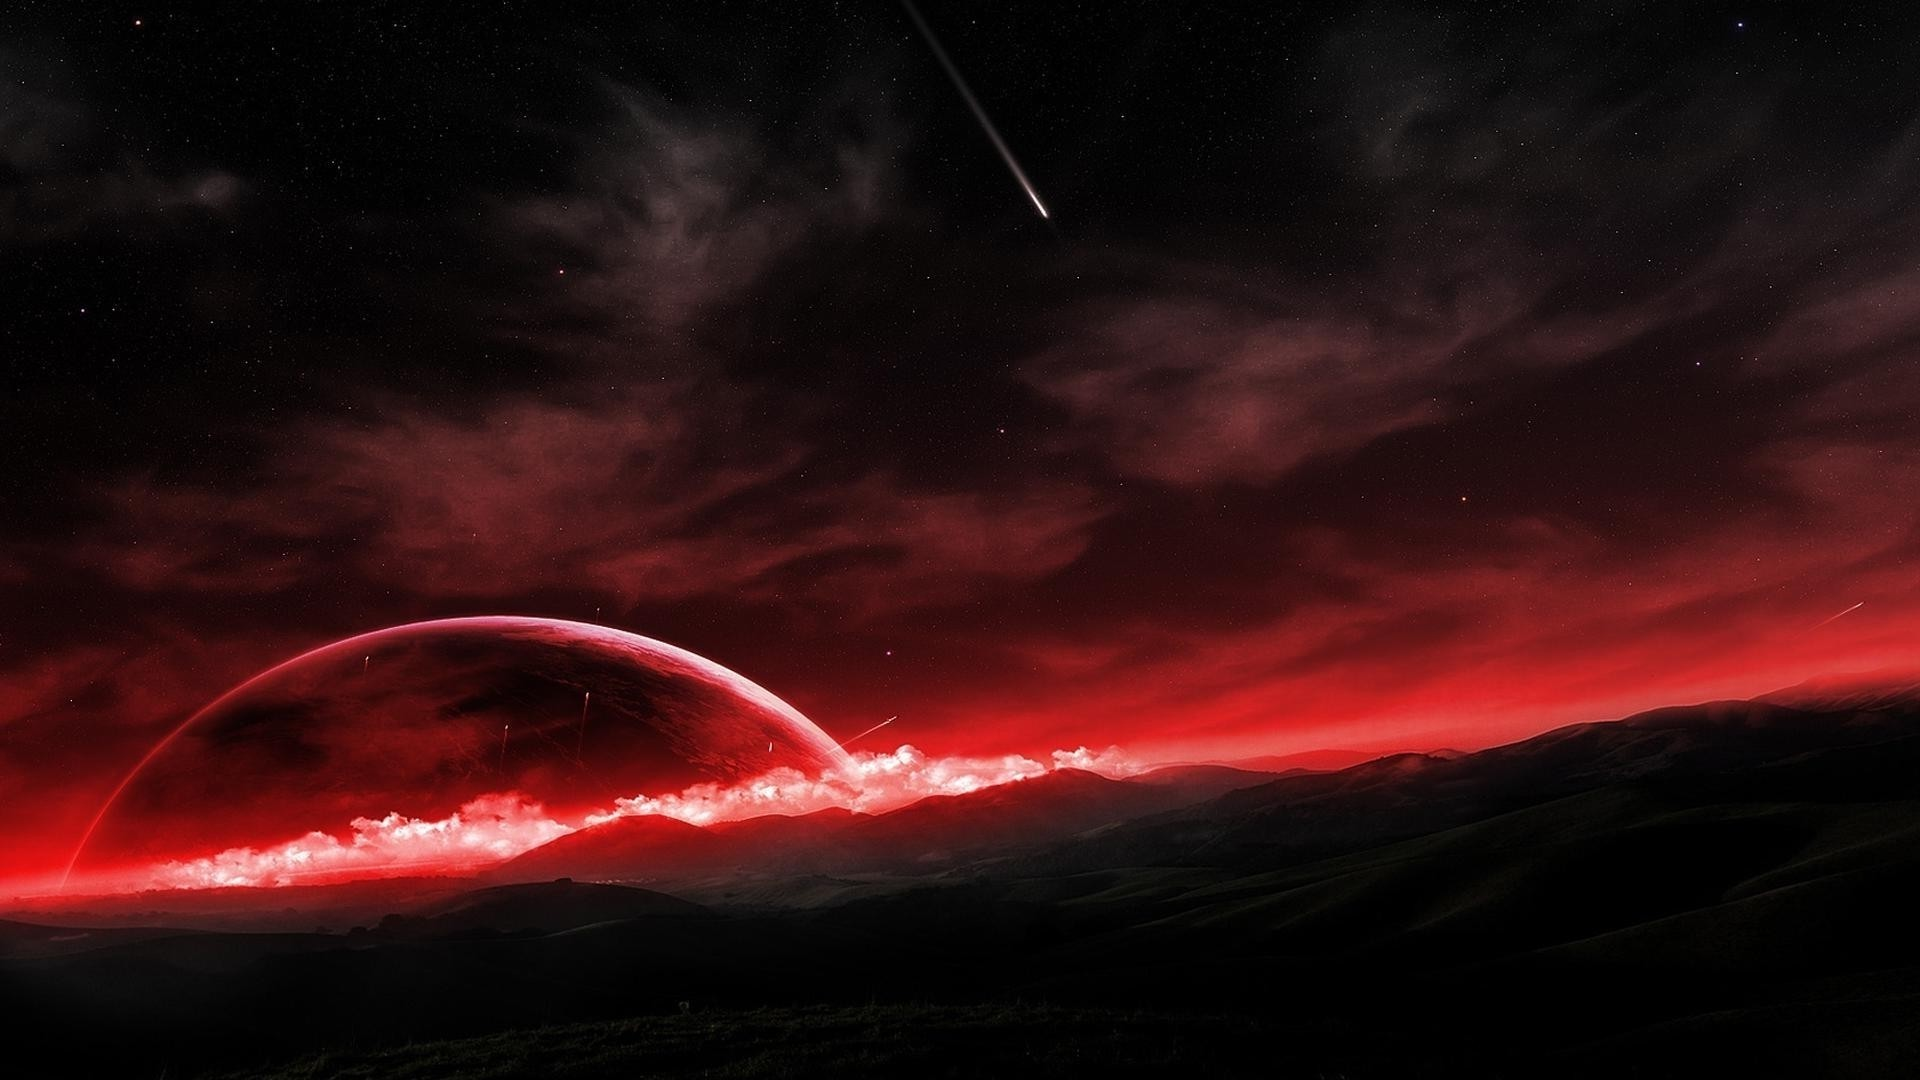 Red Space wallpaper photo hd